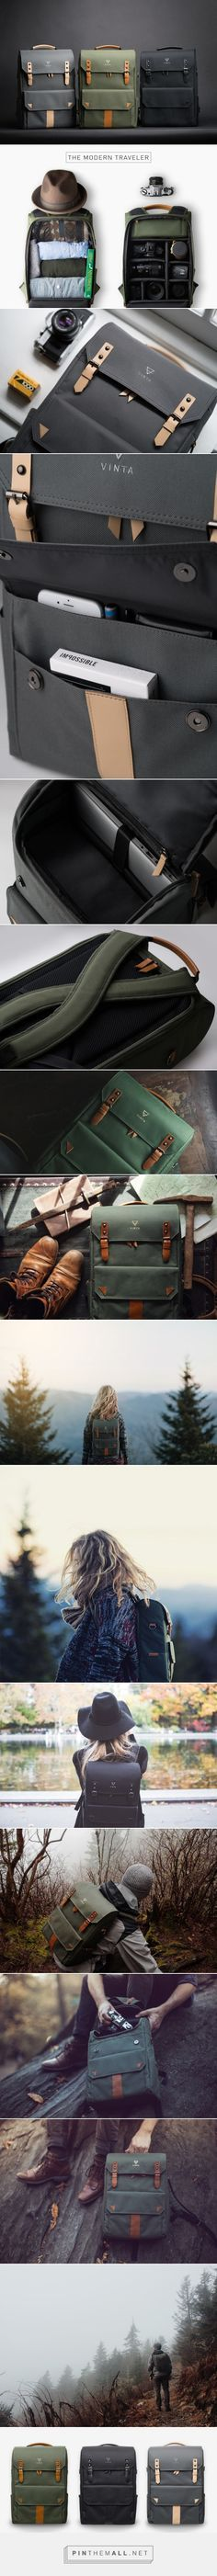 Carryology lives well beyond just this website in our hugely diverse carry community spread around the globe. Here's a scrape from our community platforms.